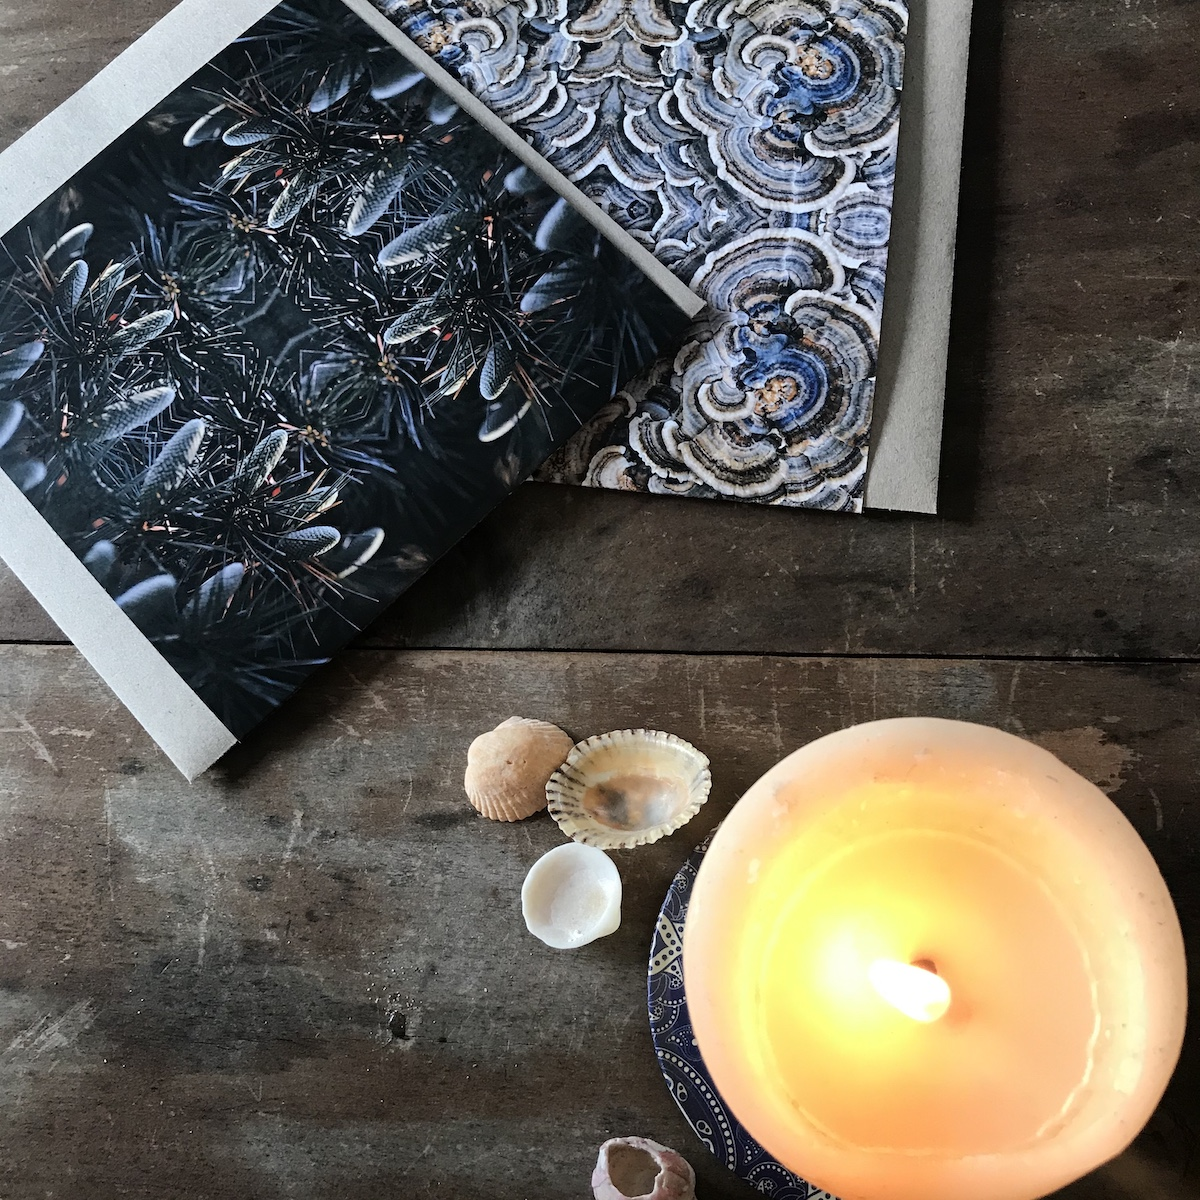 Overhead view of a burning candle with four small sea shells placed nearby There are two cards with abstract nature photography also displayed.